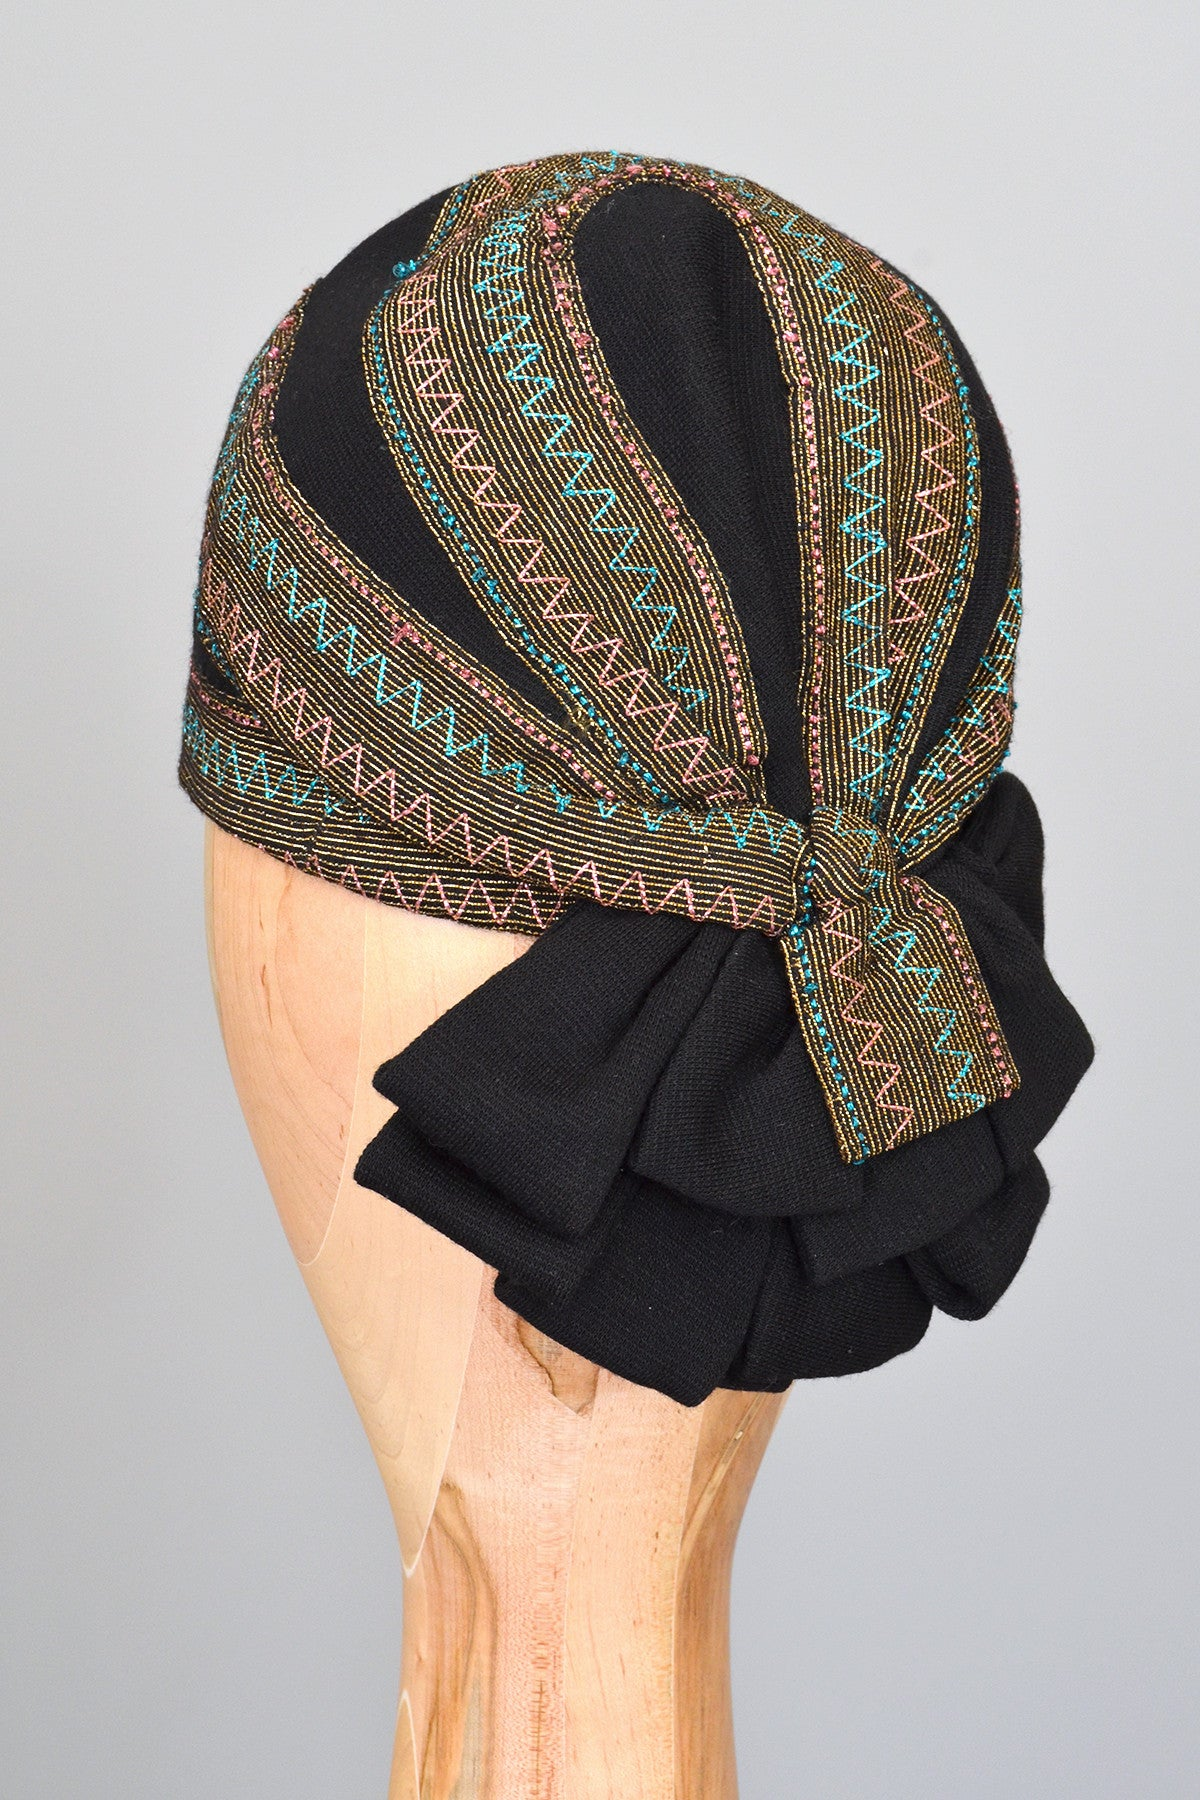 1950s Black Cloche Turban with Blue Pink Gold Metallic Weave